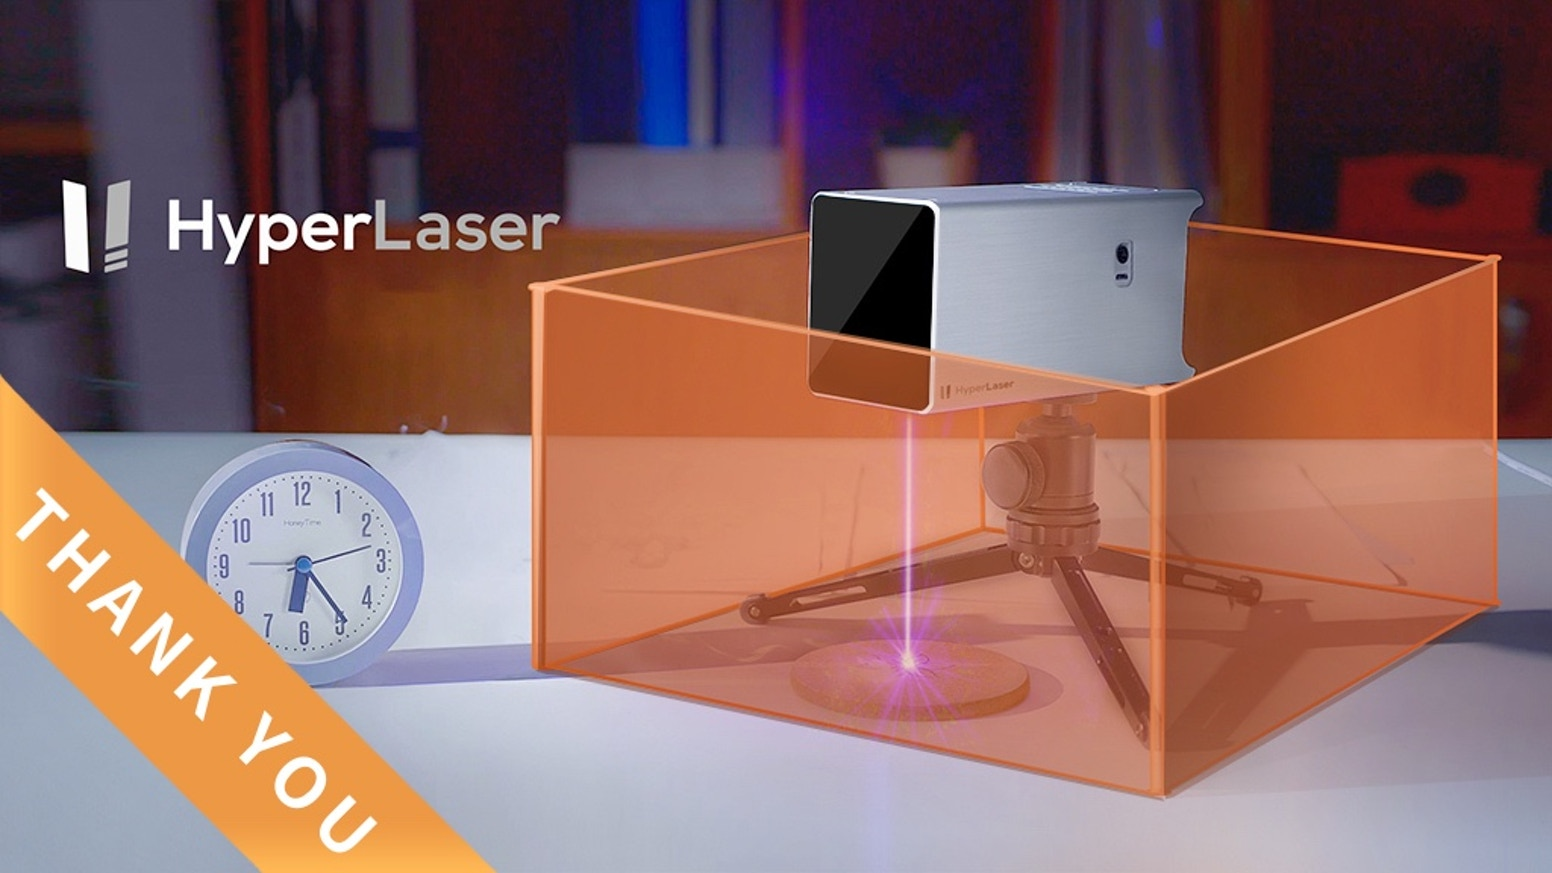 HyperLaser redefines the laser engraving with powerful features and user-friendly operation. It makes laser creation easy, safe and fun